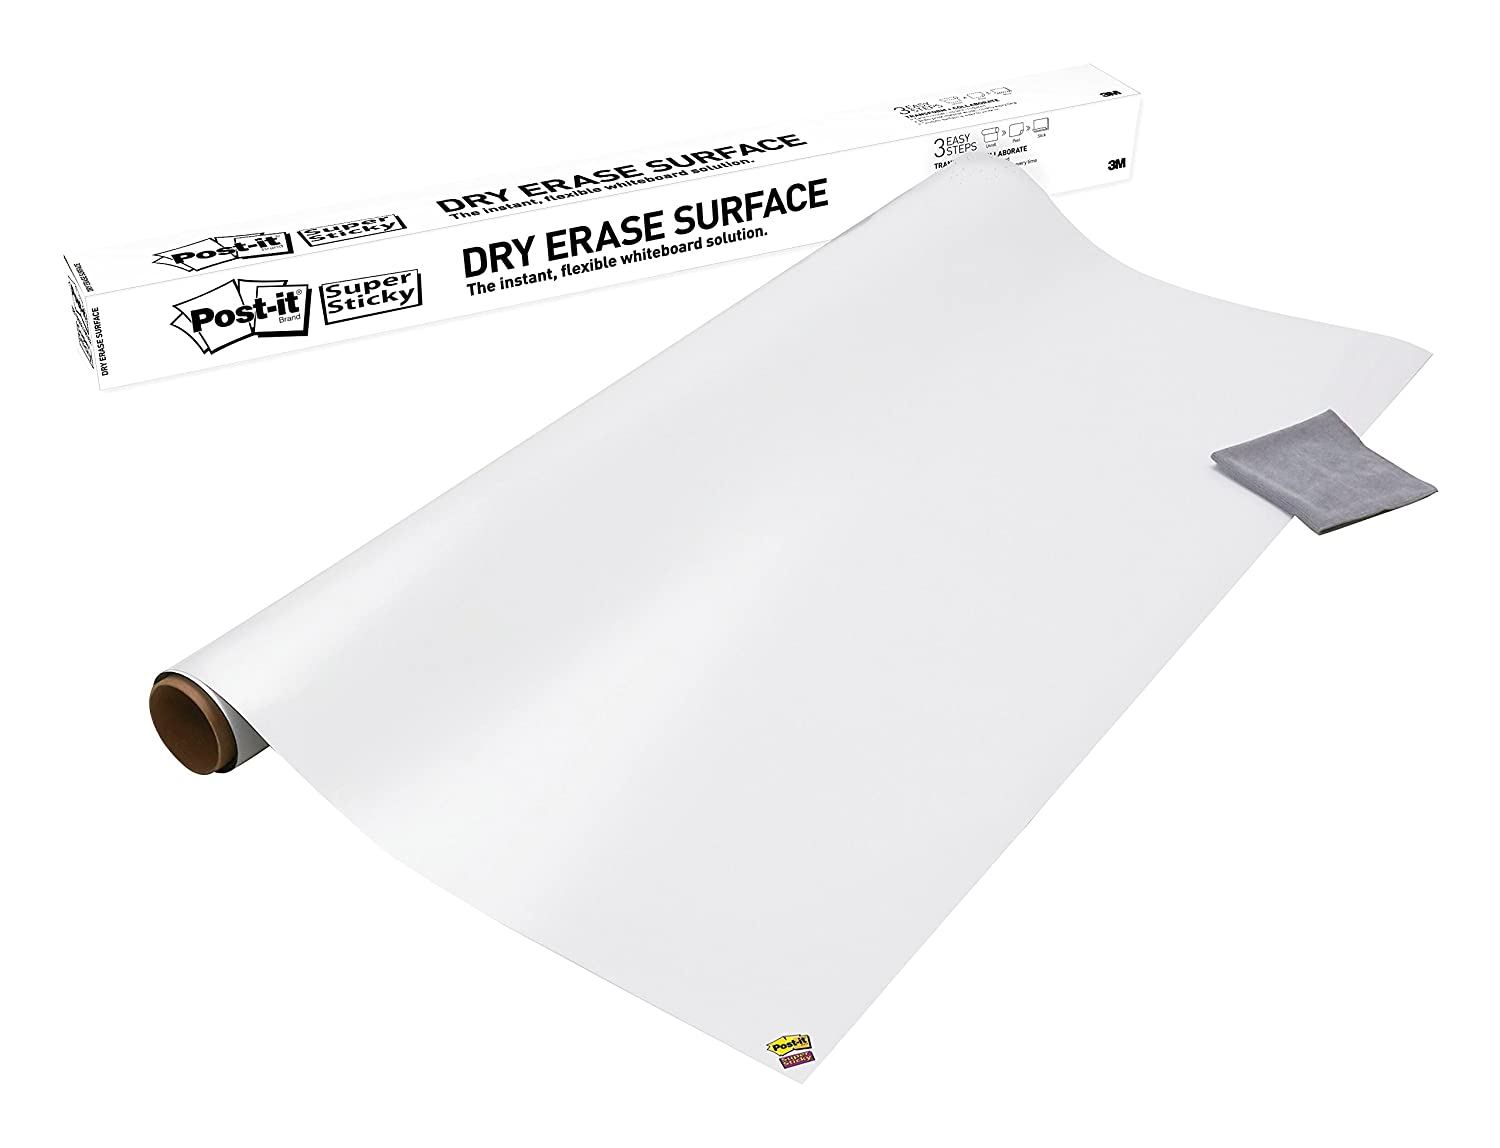 Post-it Dry Erase Whiteboard Film Surface for Walls, Doors, Tables, Chalkboards, Whiteboards, and More, Removable, Super Sticky, Stain-Proof, Easy Installation, 3 ft x 2 ft Roll (DEF3X2A) 3M Office Products